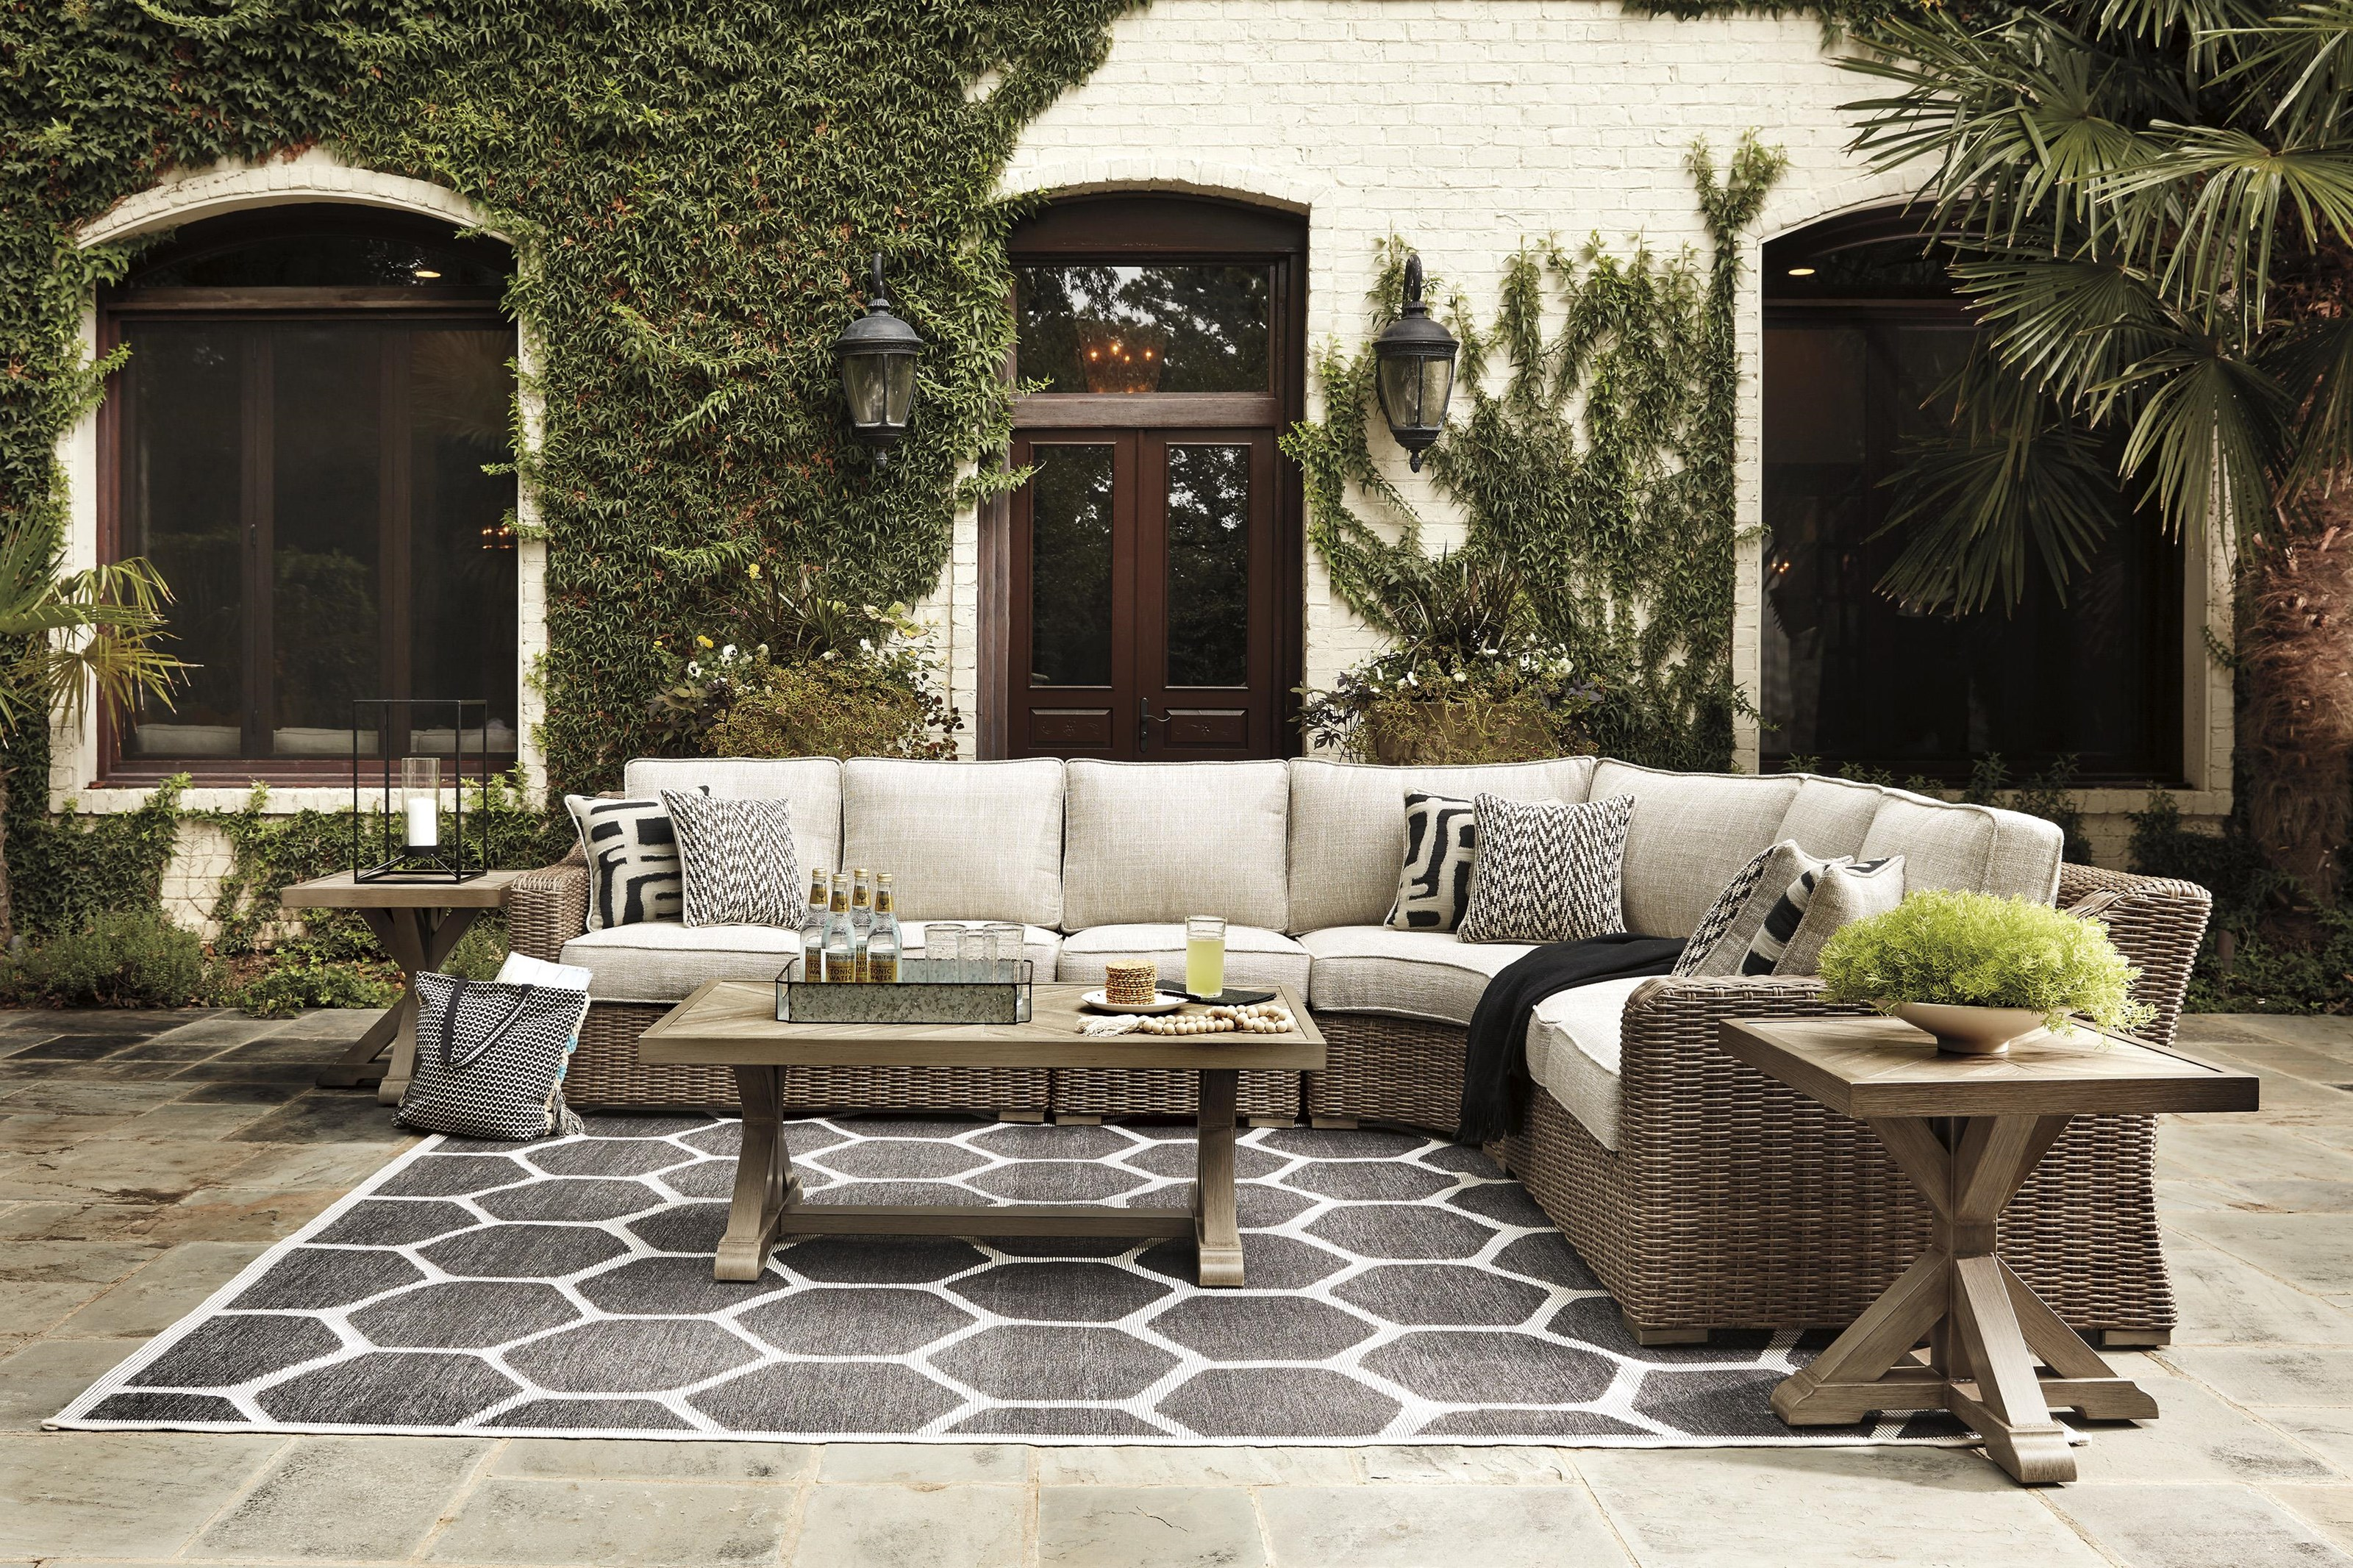 Beachcroft 7 PC Outdoor Conversation Set by Signature Design by Ashley at Sam Levitz Outlet